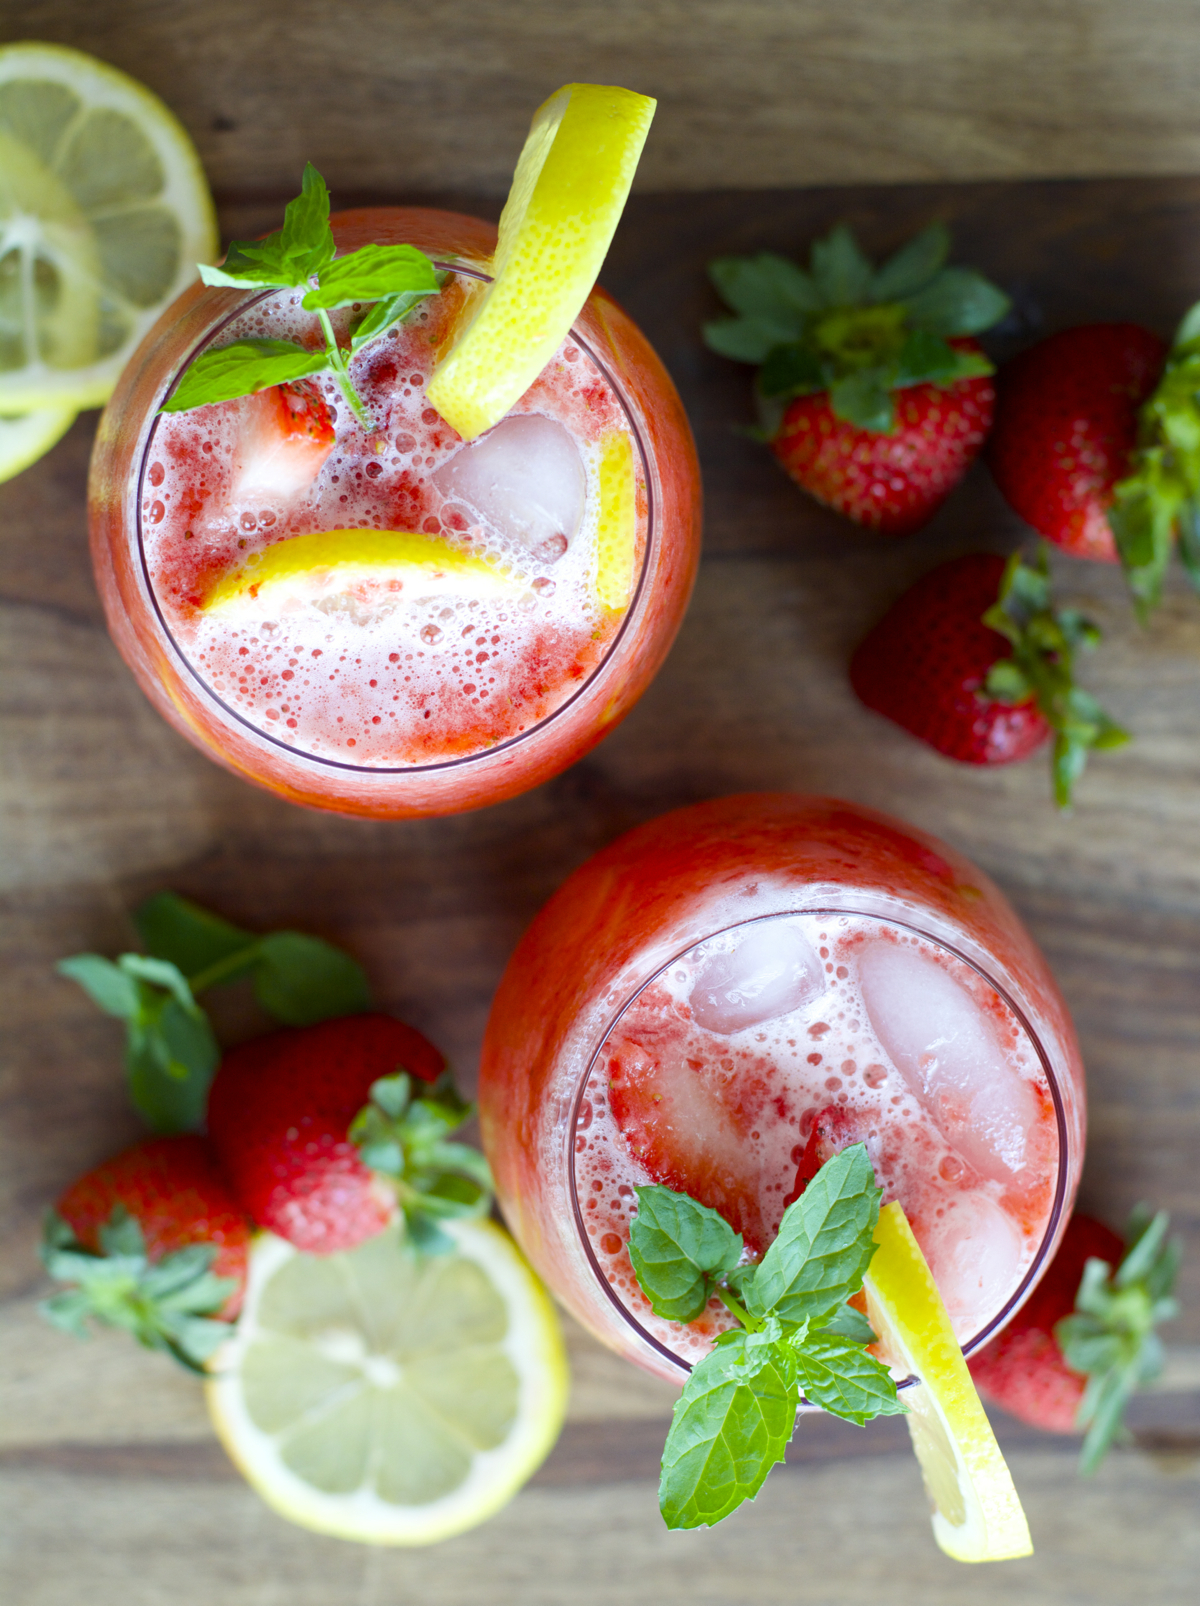 overhead view of two glasses of strawberry lemonade